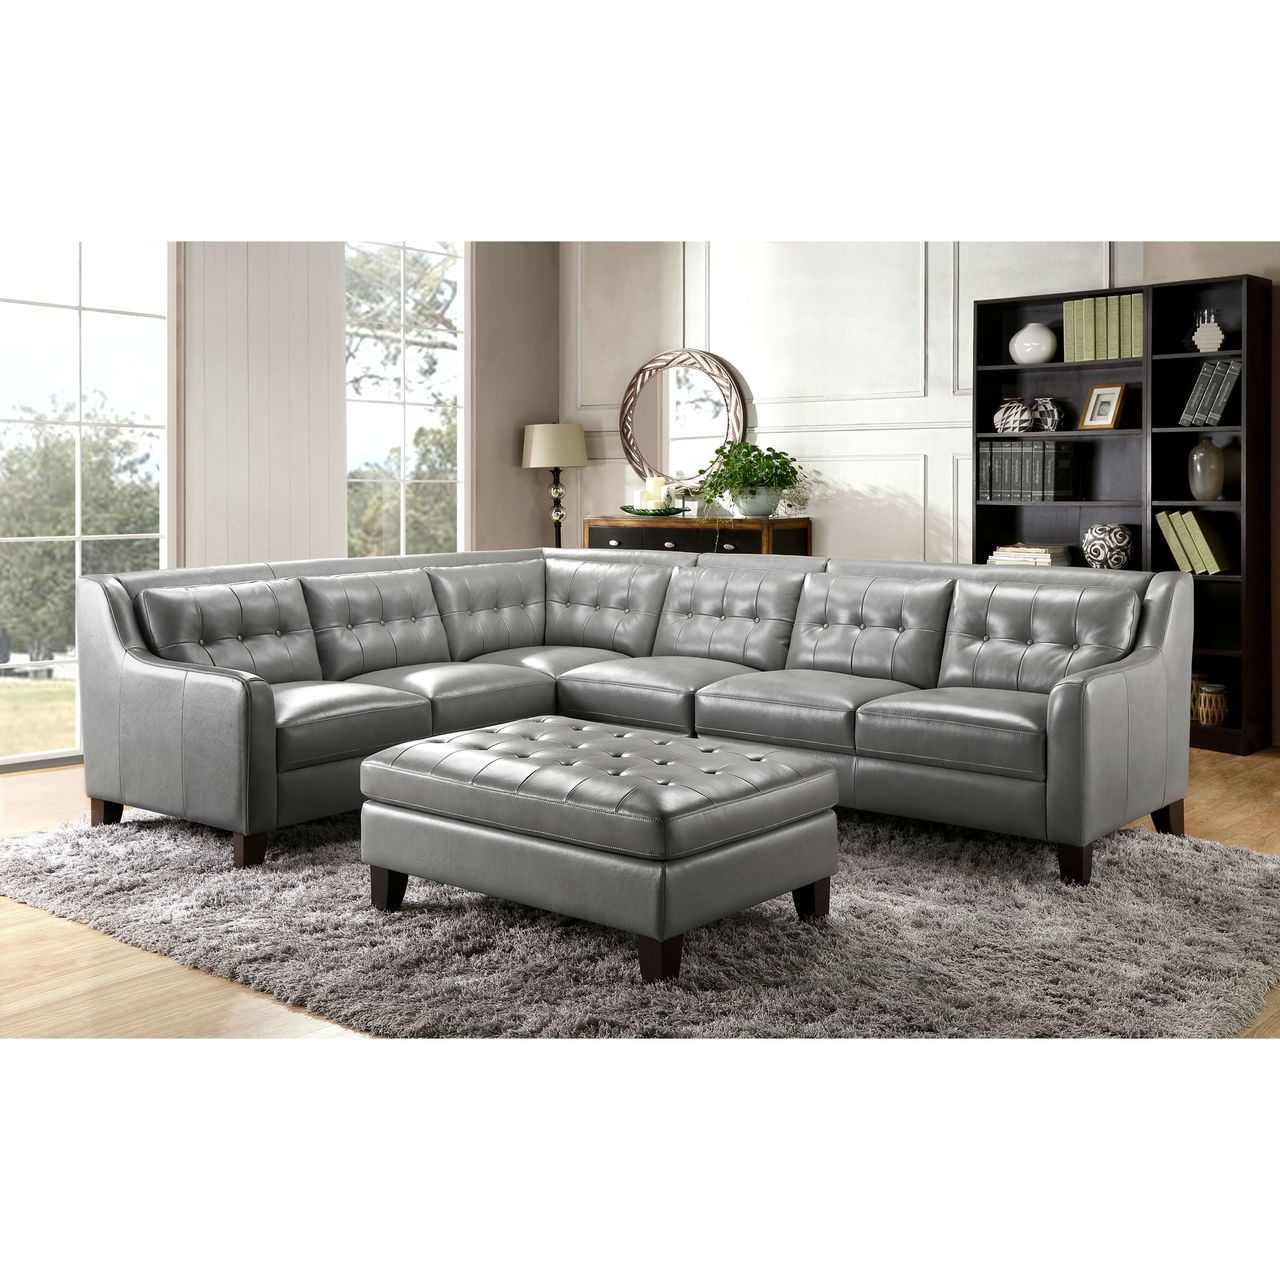 What Sectional is Right For You? | American home furniture ...